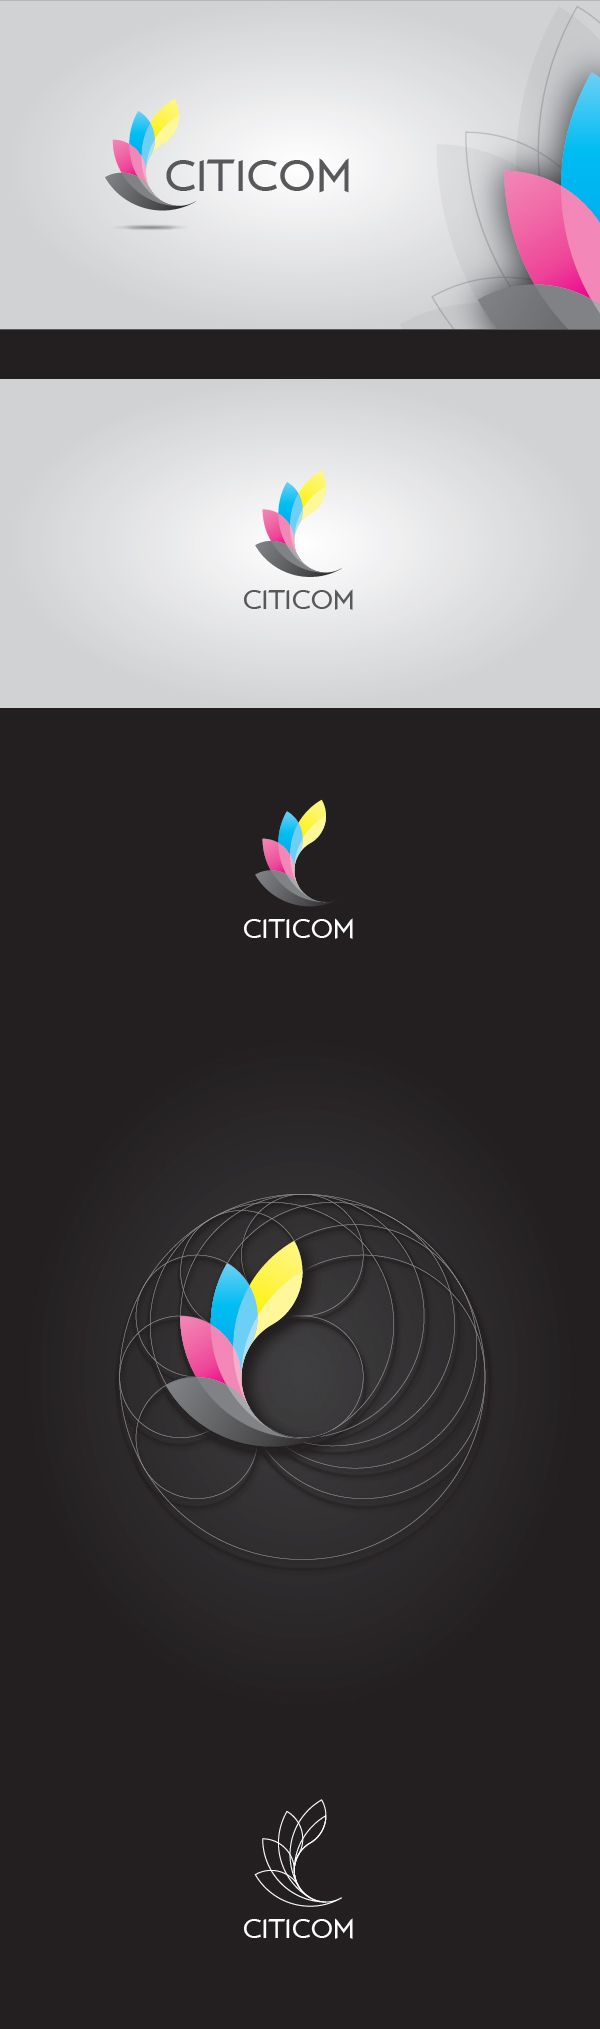 CITICOM concept by Maroš Em, via Behance When creating your brand, consider the different ways to incorporate your logo. Letterheads, business cards, and shirts are going to be different.